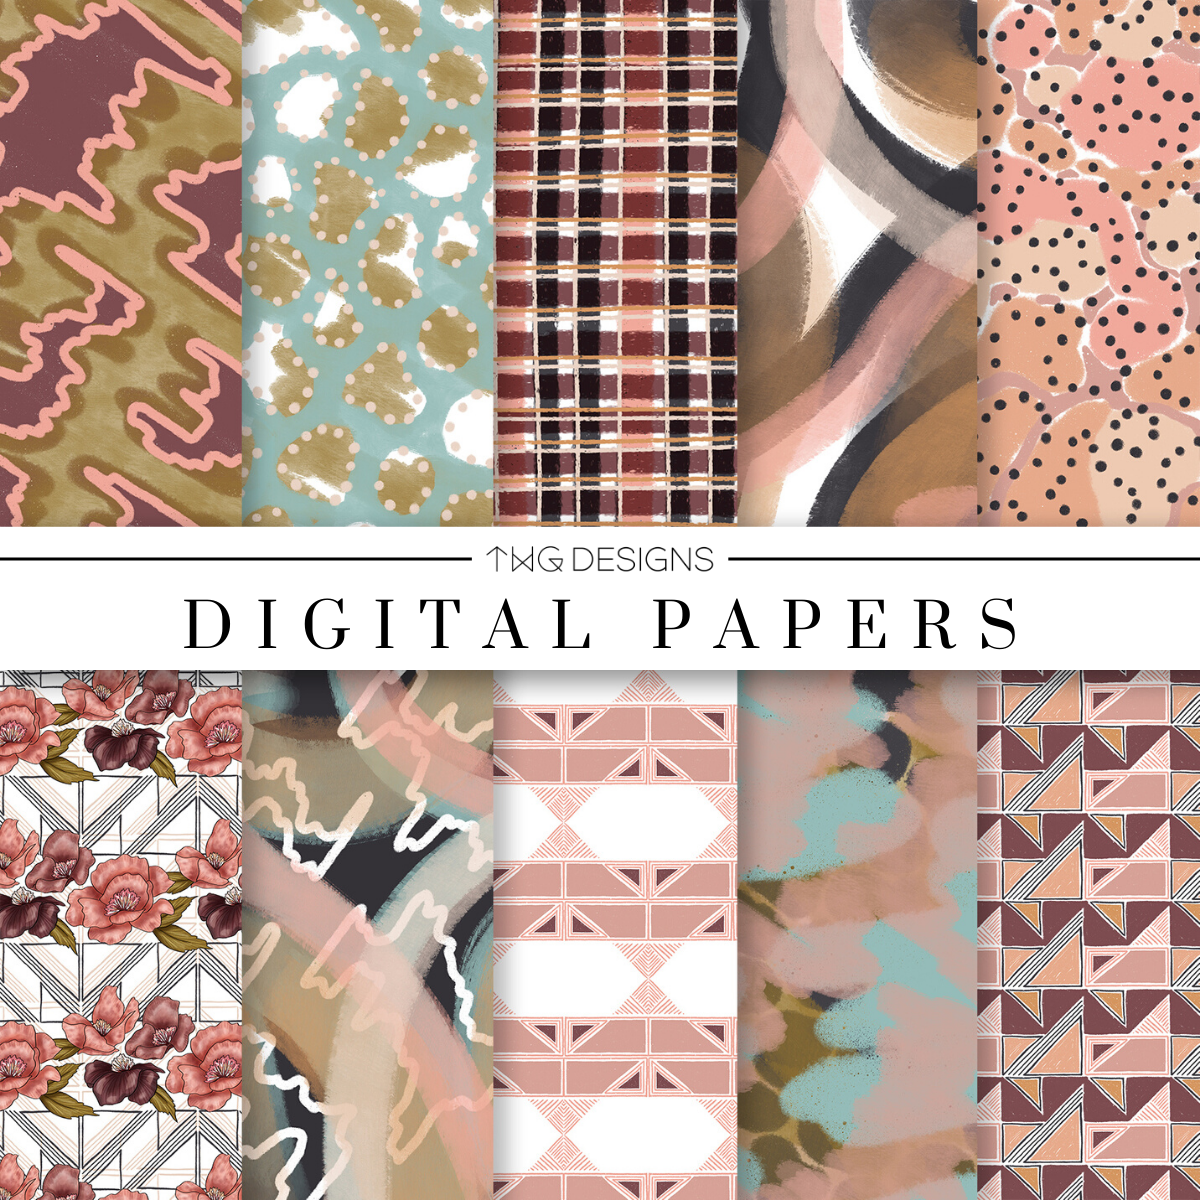 City Sweets Digital Paper Set